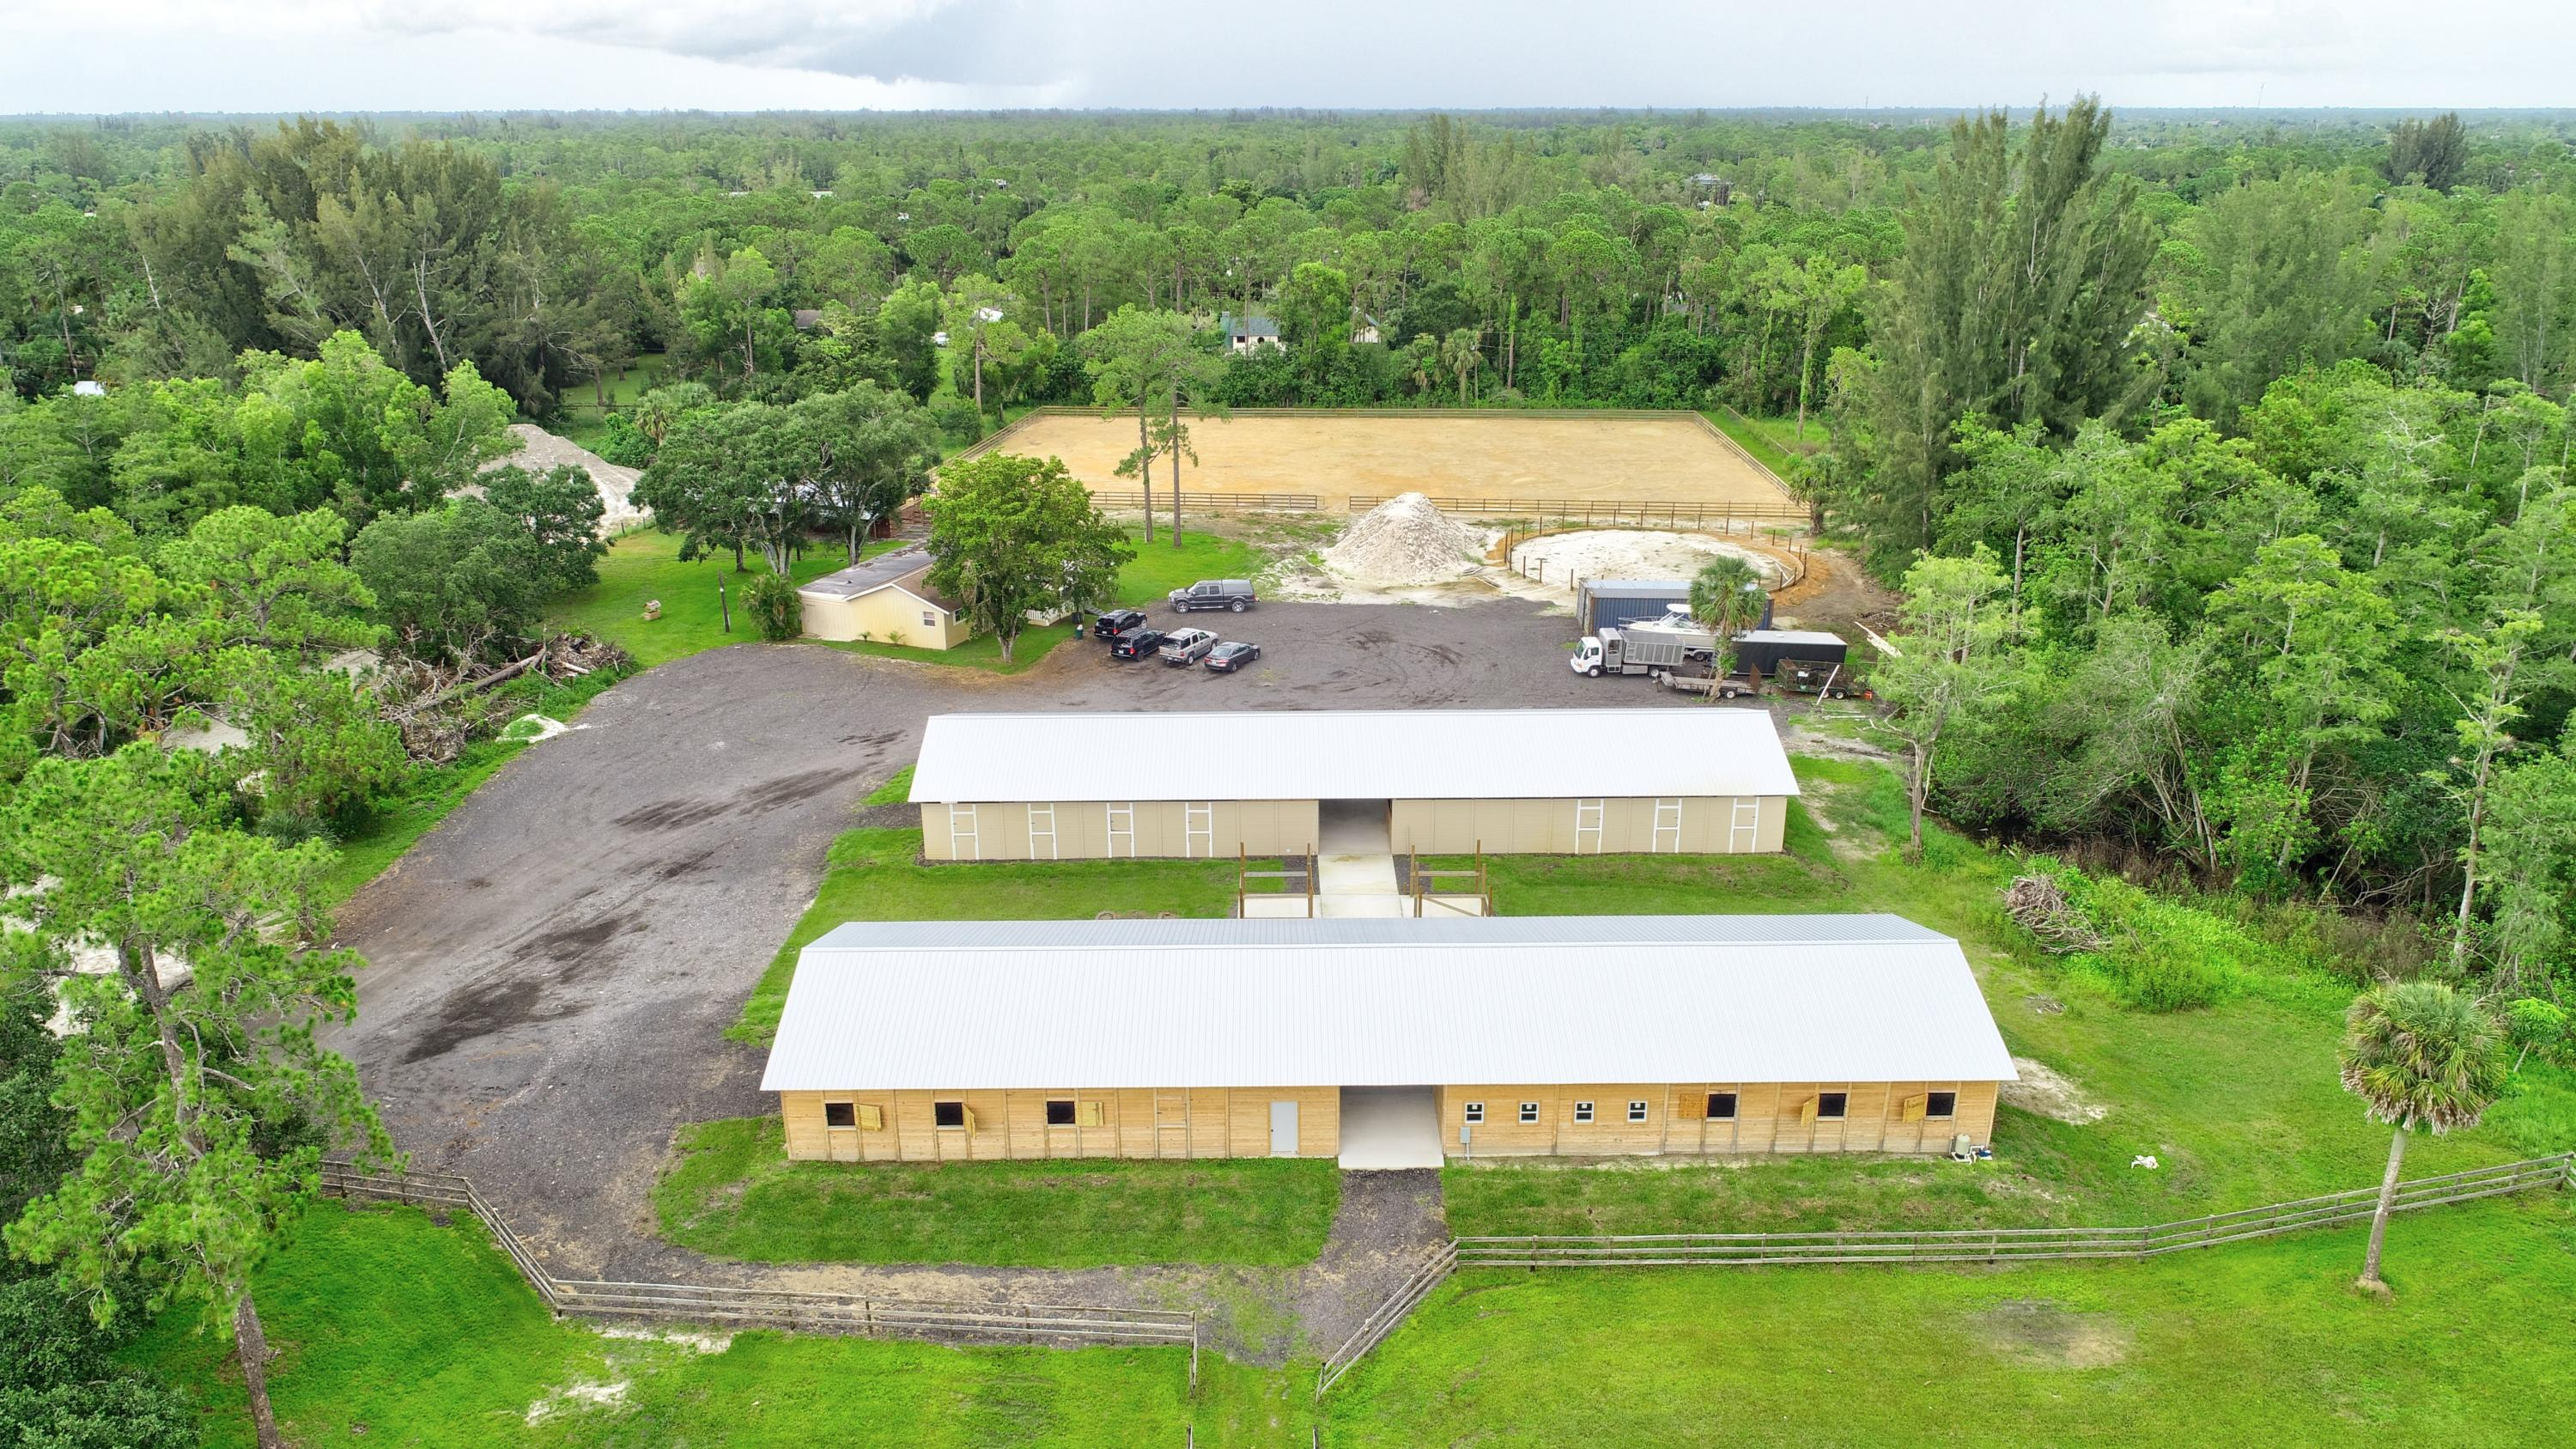 13101 Collecting Canal Road, Loxahatchee Groves, Florida 33470, ,Barn,For Rent,Loxahatchee Groves,Collecting Canal,RX-10444586